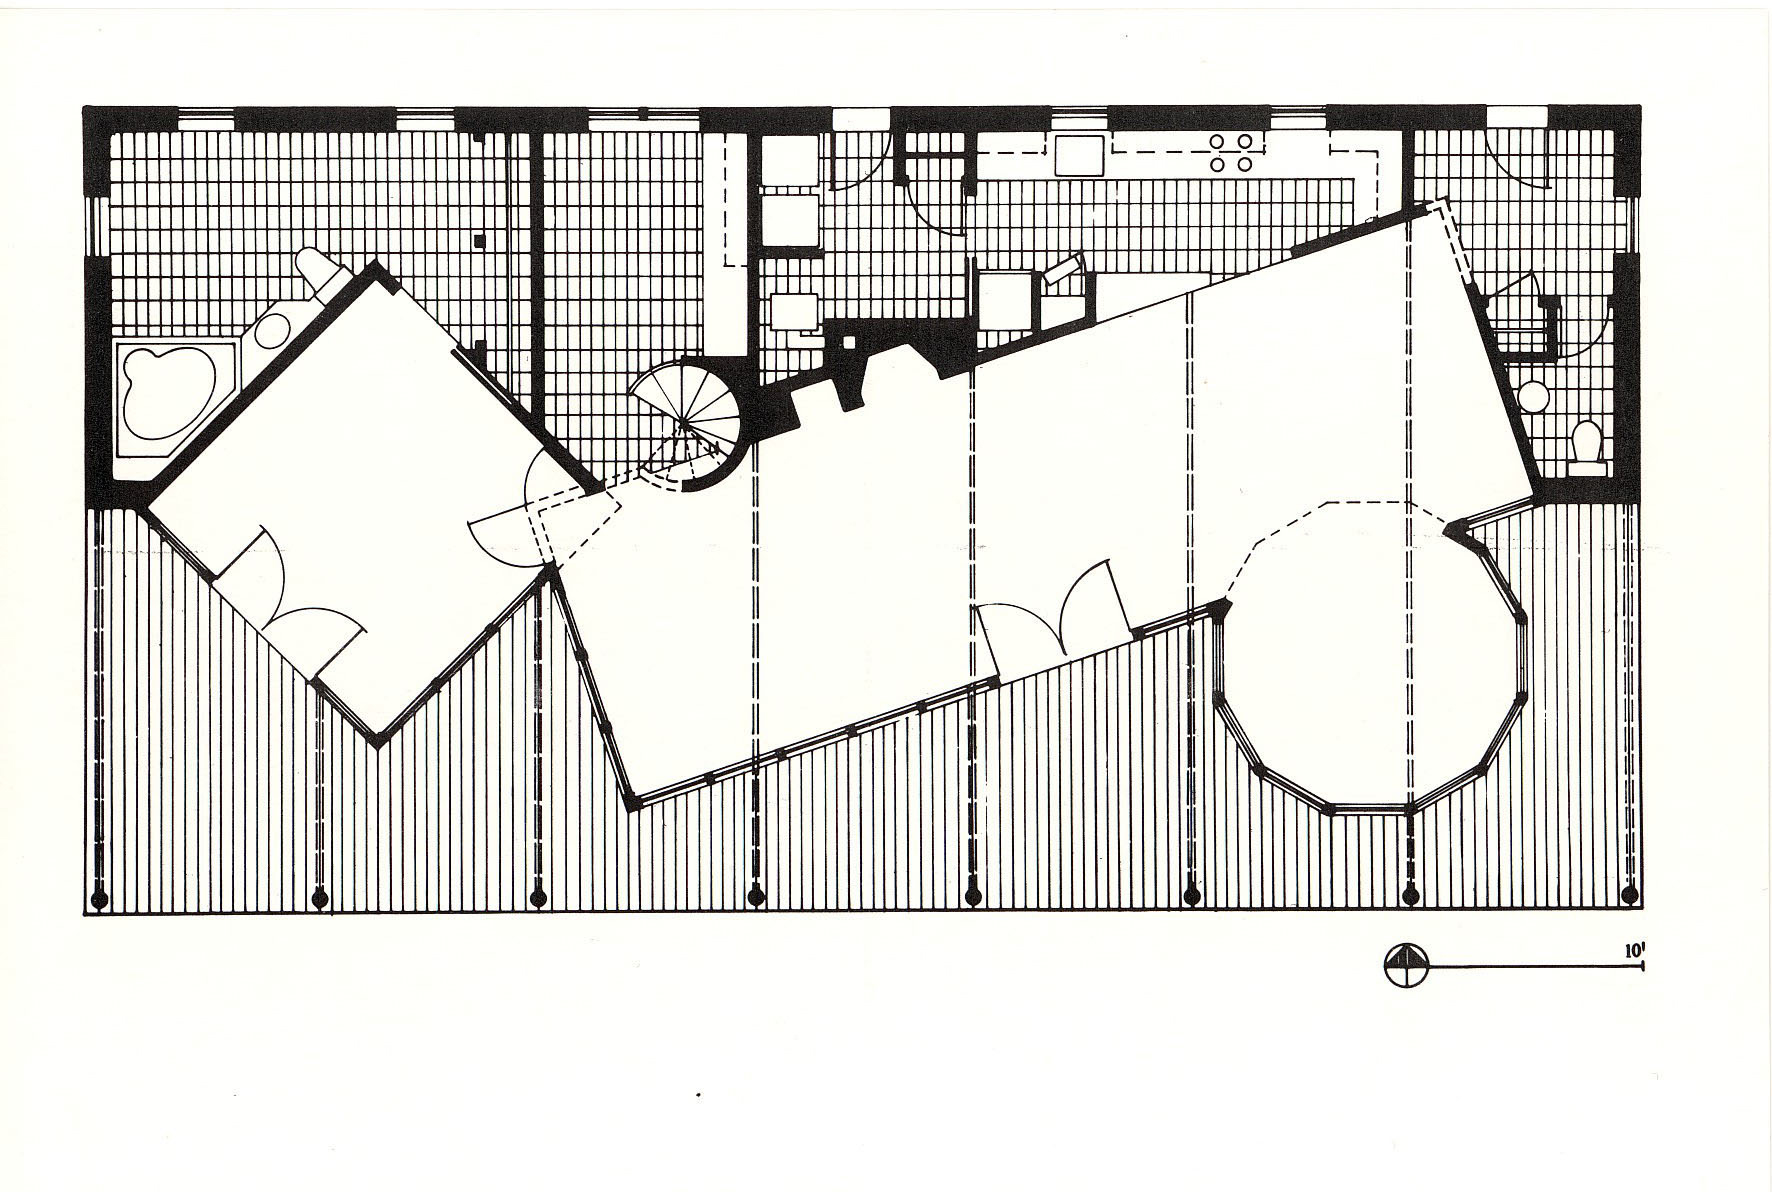 Copy of hoepfner plan.jpg